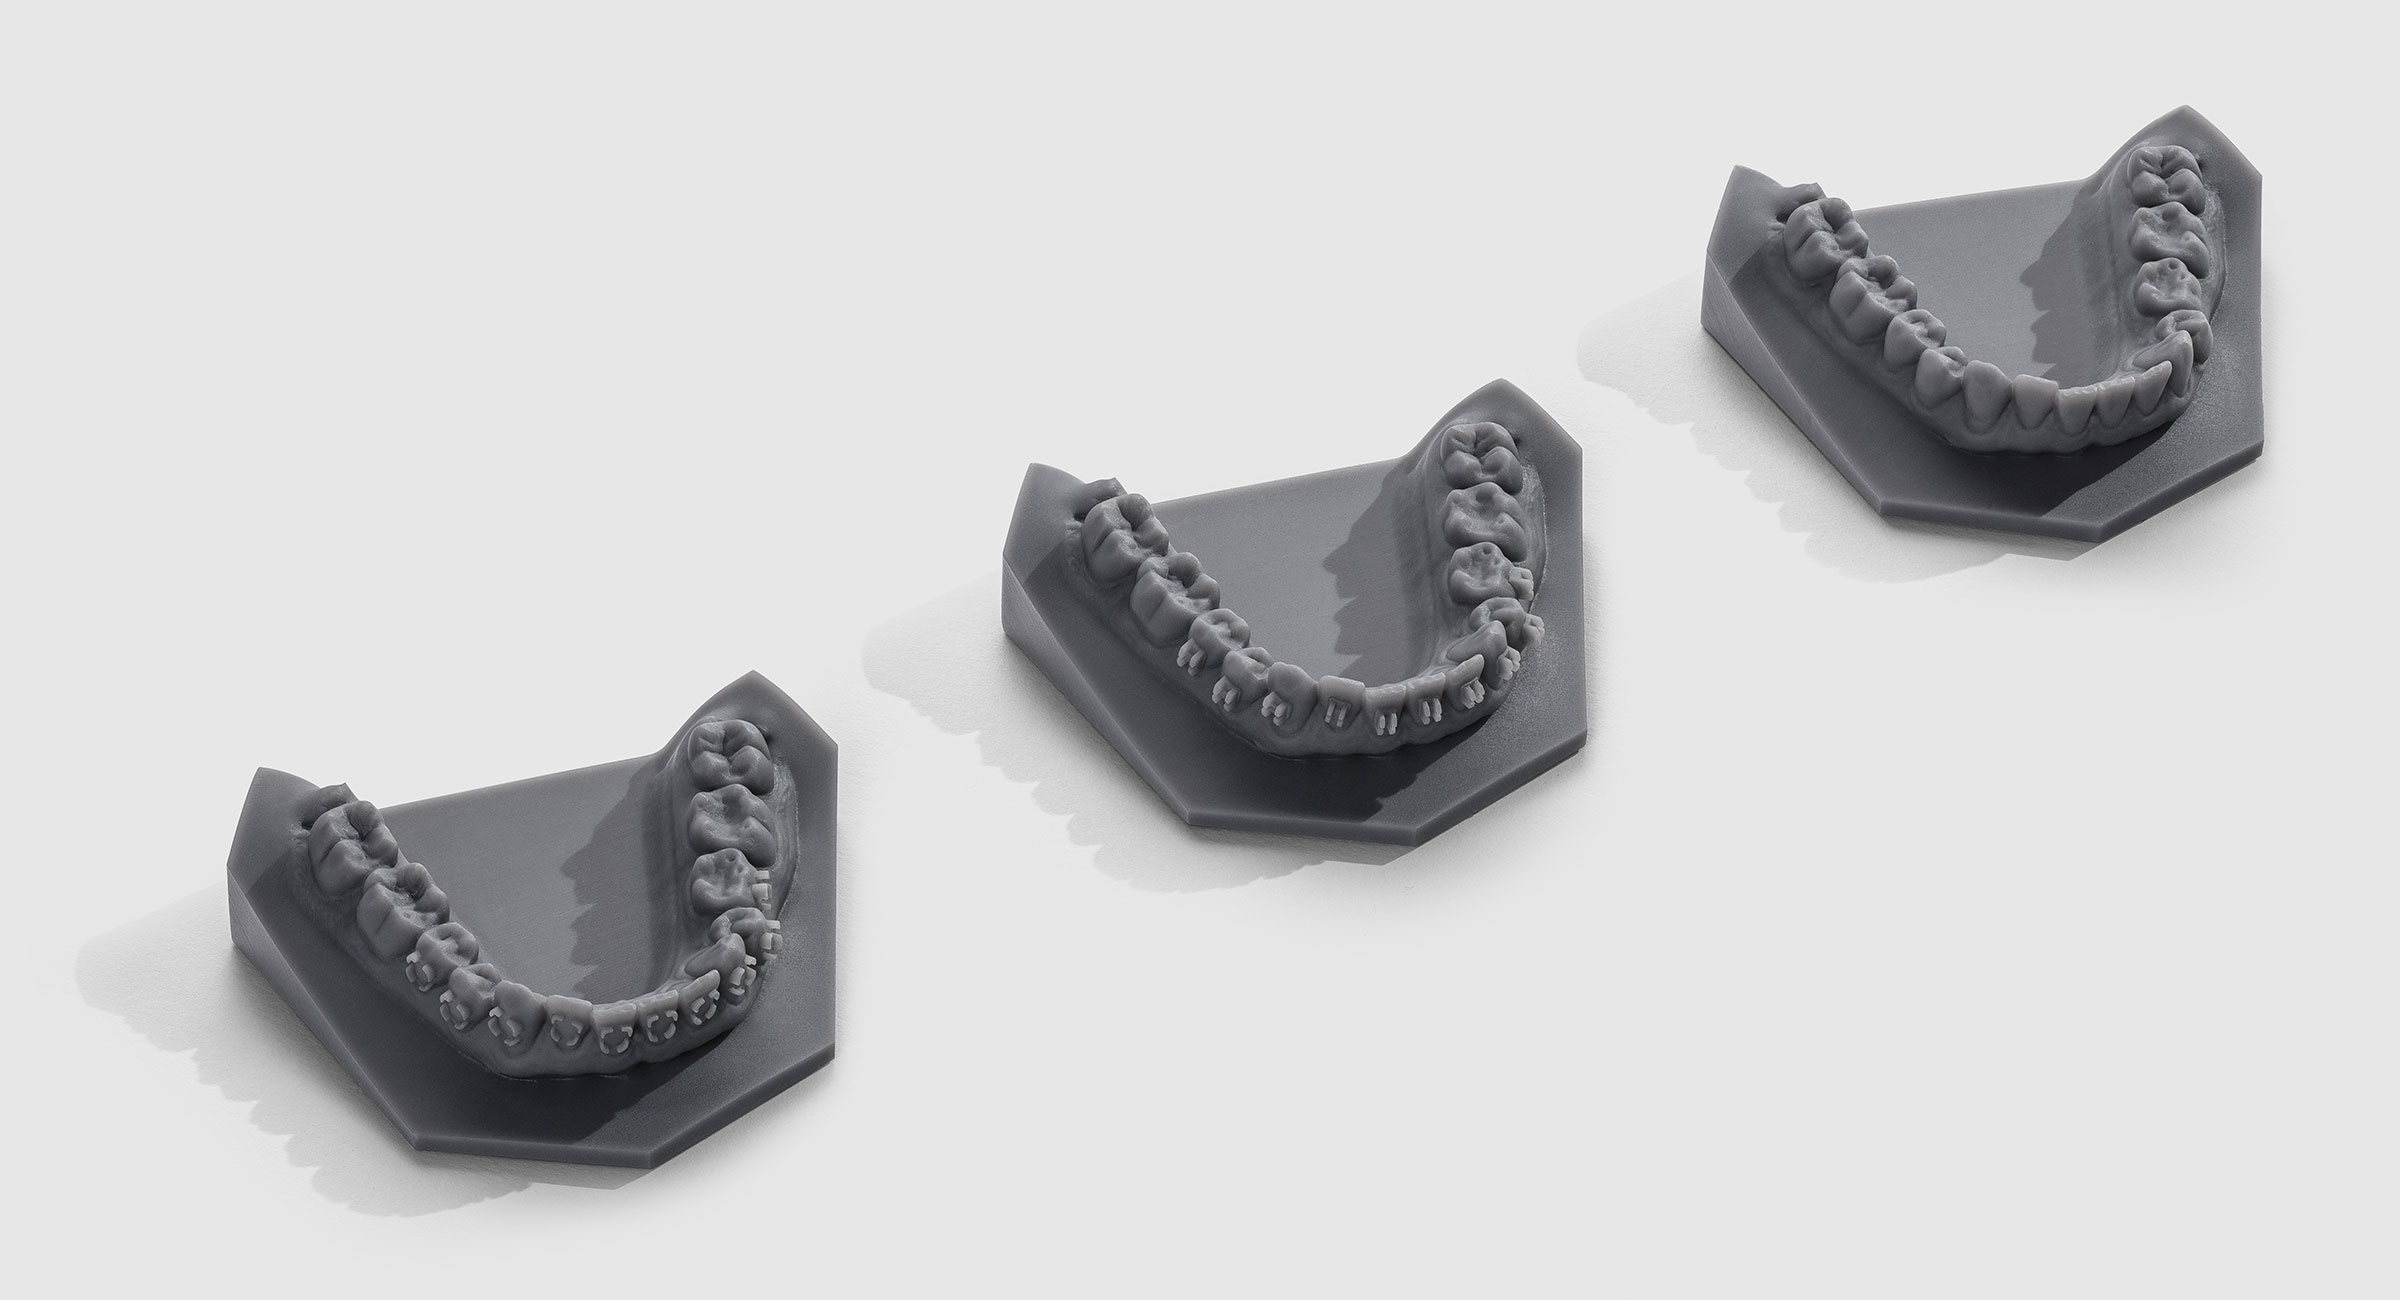 With its high precision and contrast, Grey v3 makes for beautiful and detailed dental models.